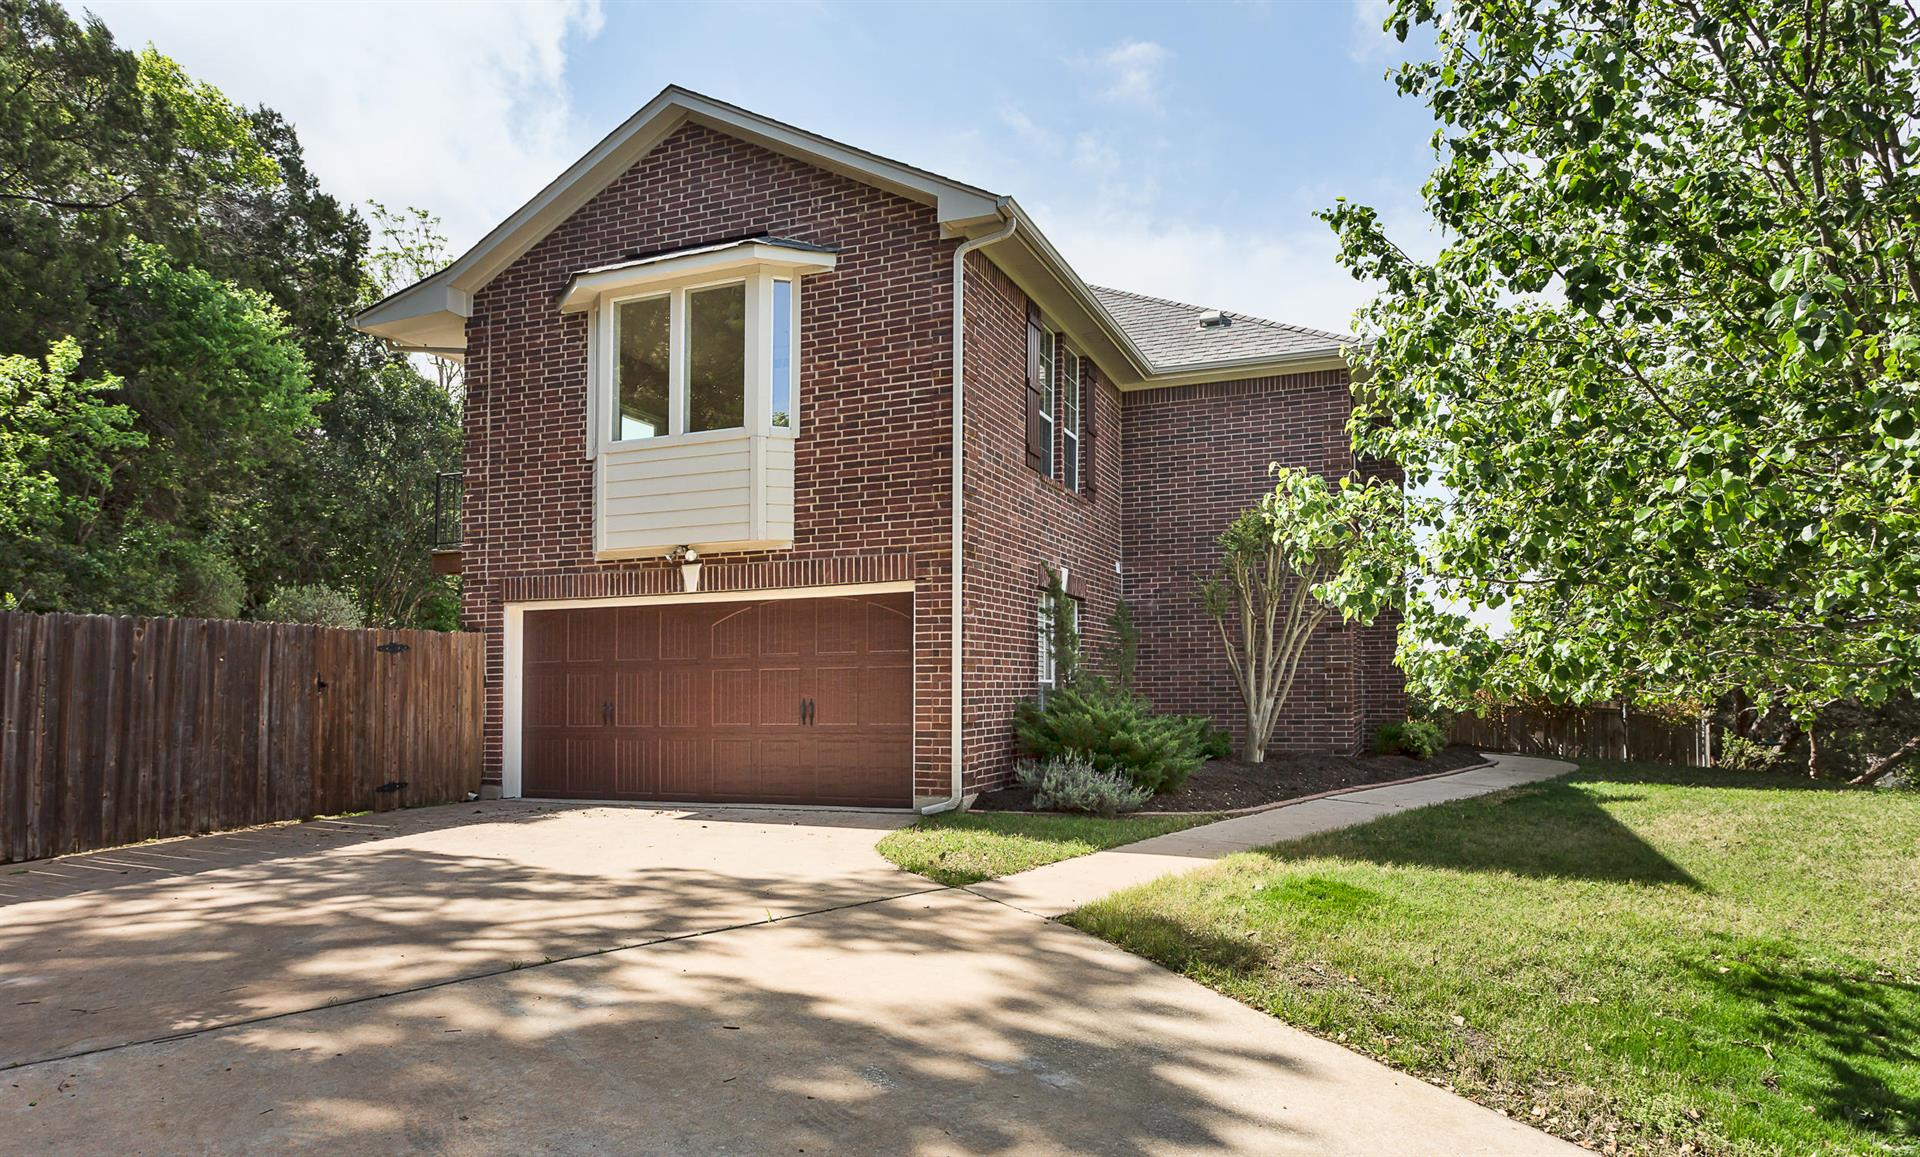 Additional photo for property listing at 6403 Dry Bend Cove 6403 Dry Bend Cove Austin, Texas 78731 United States